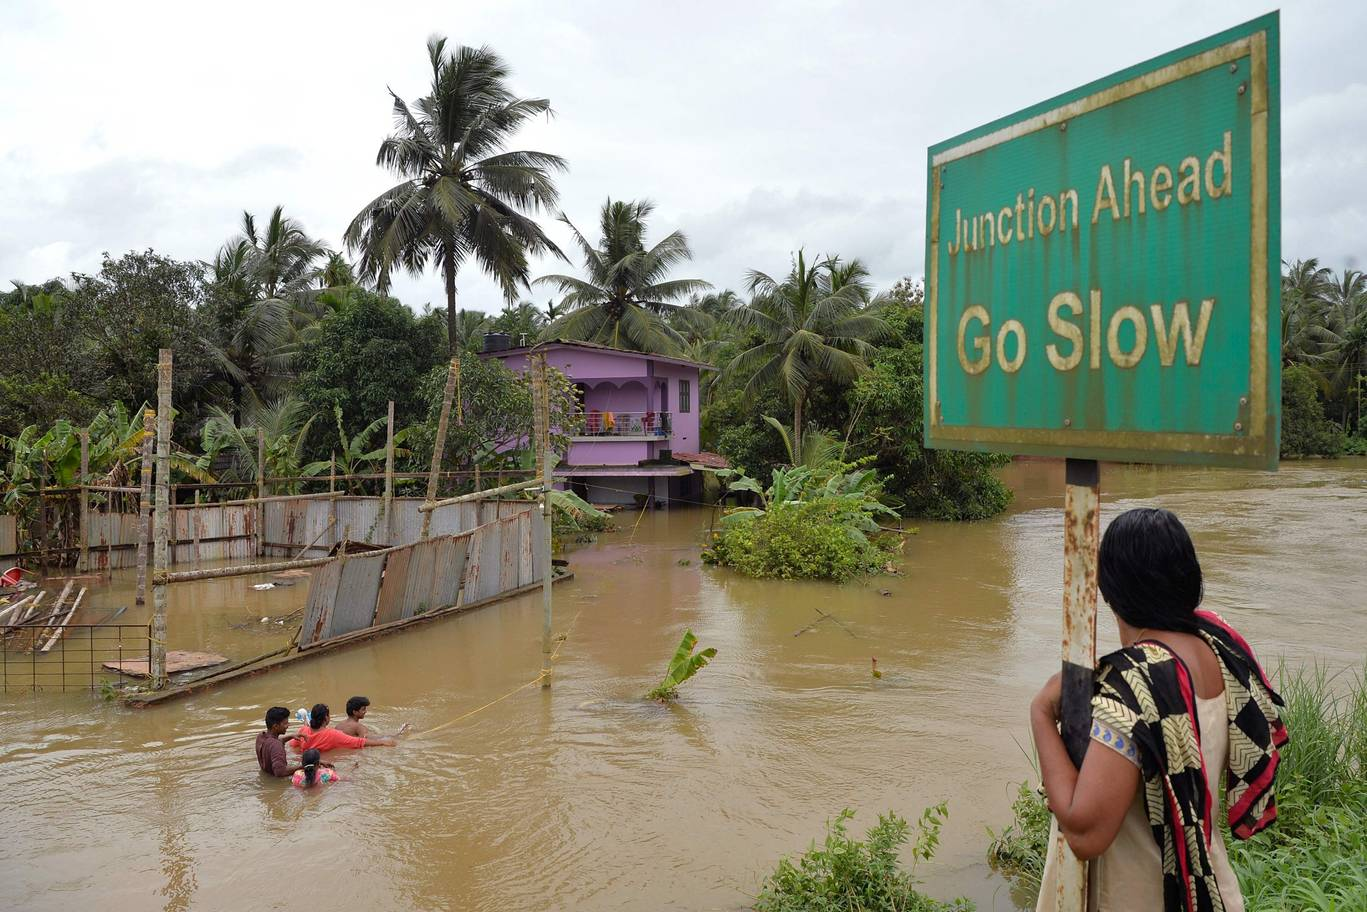 Kerala threatened with epidemic of 'rat fever' after severe flooding